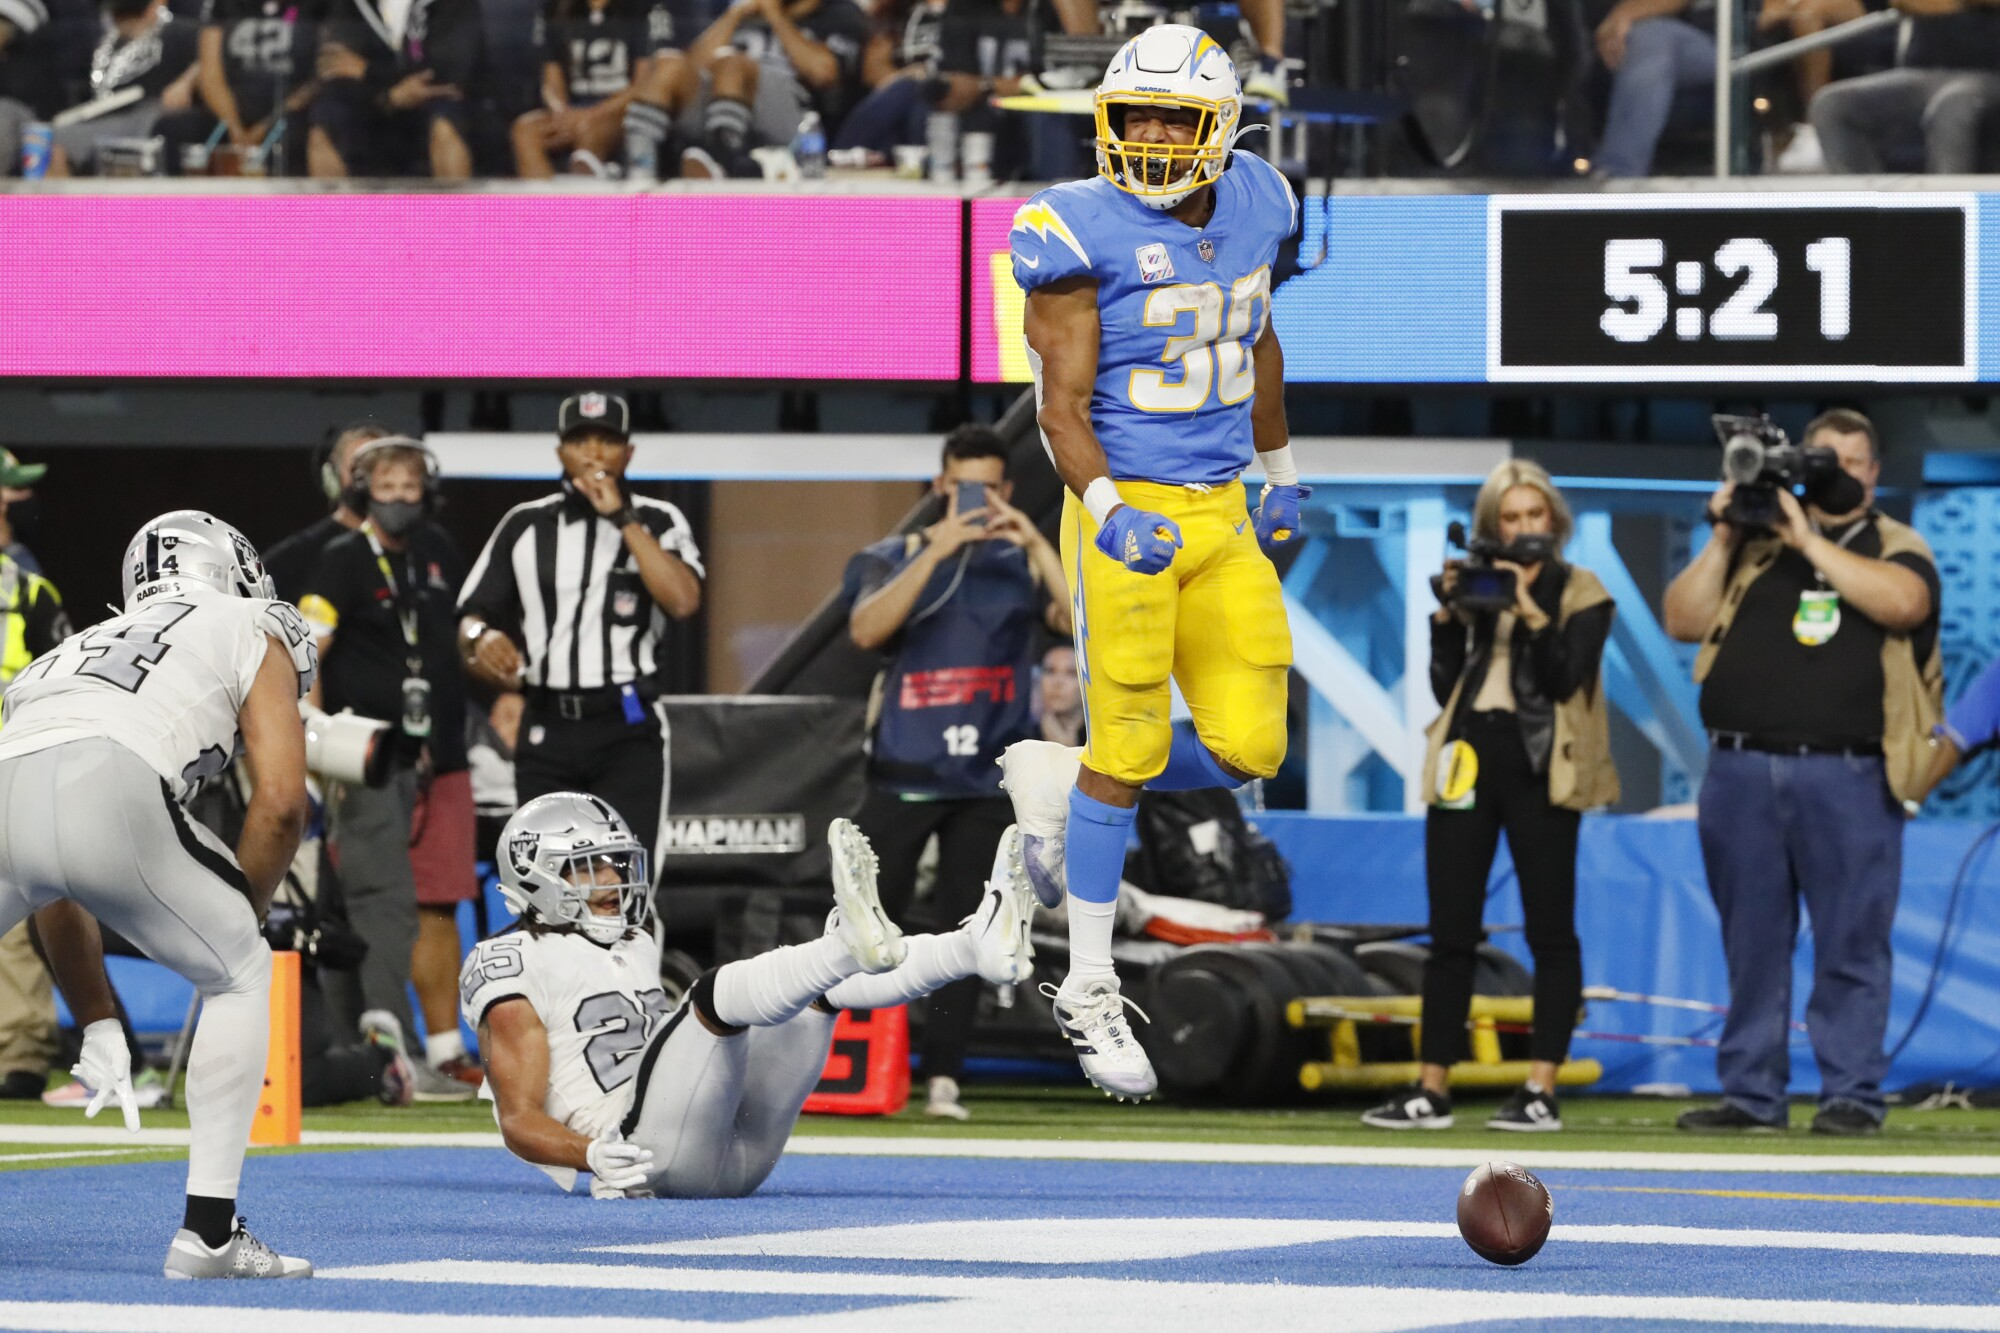 Los Angeles Chargers running back Austin Ekeler scores a touchdown past Las Vegas Raiders safety Trevon Moehrig